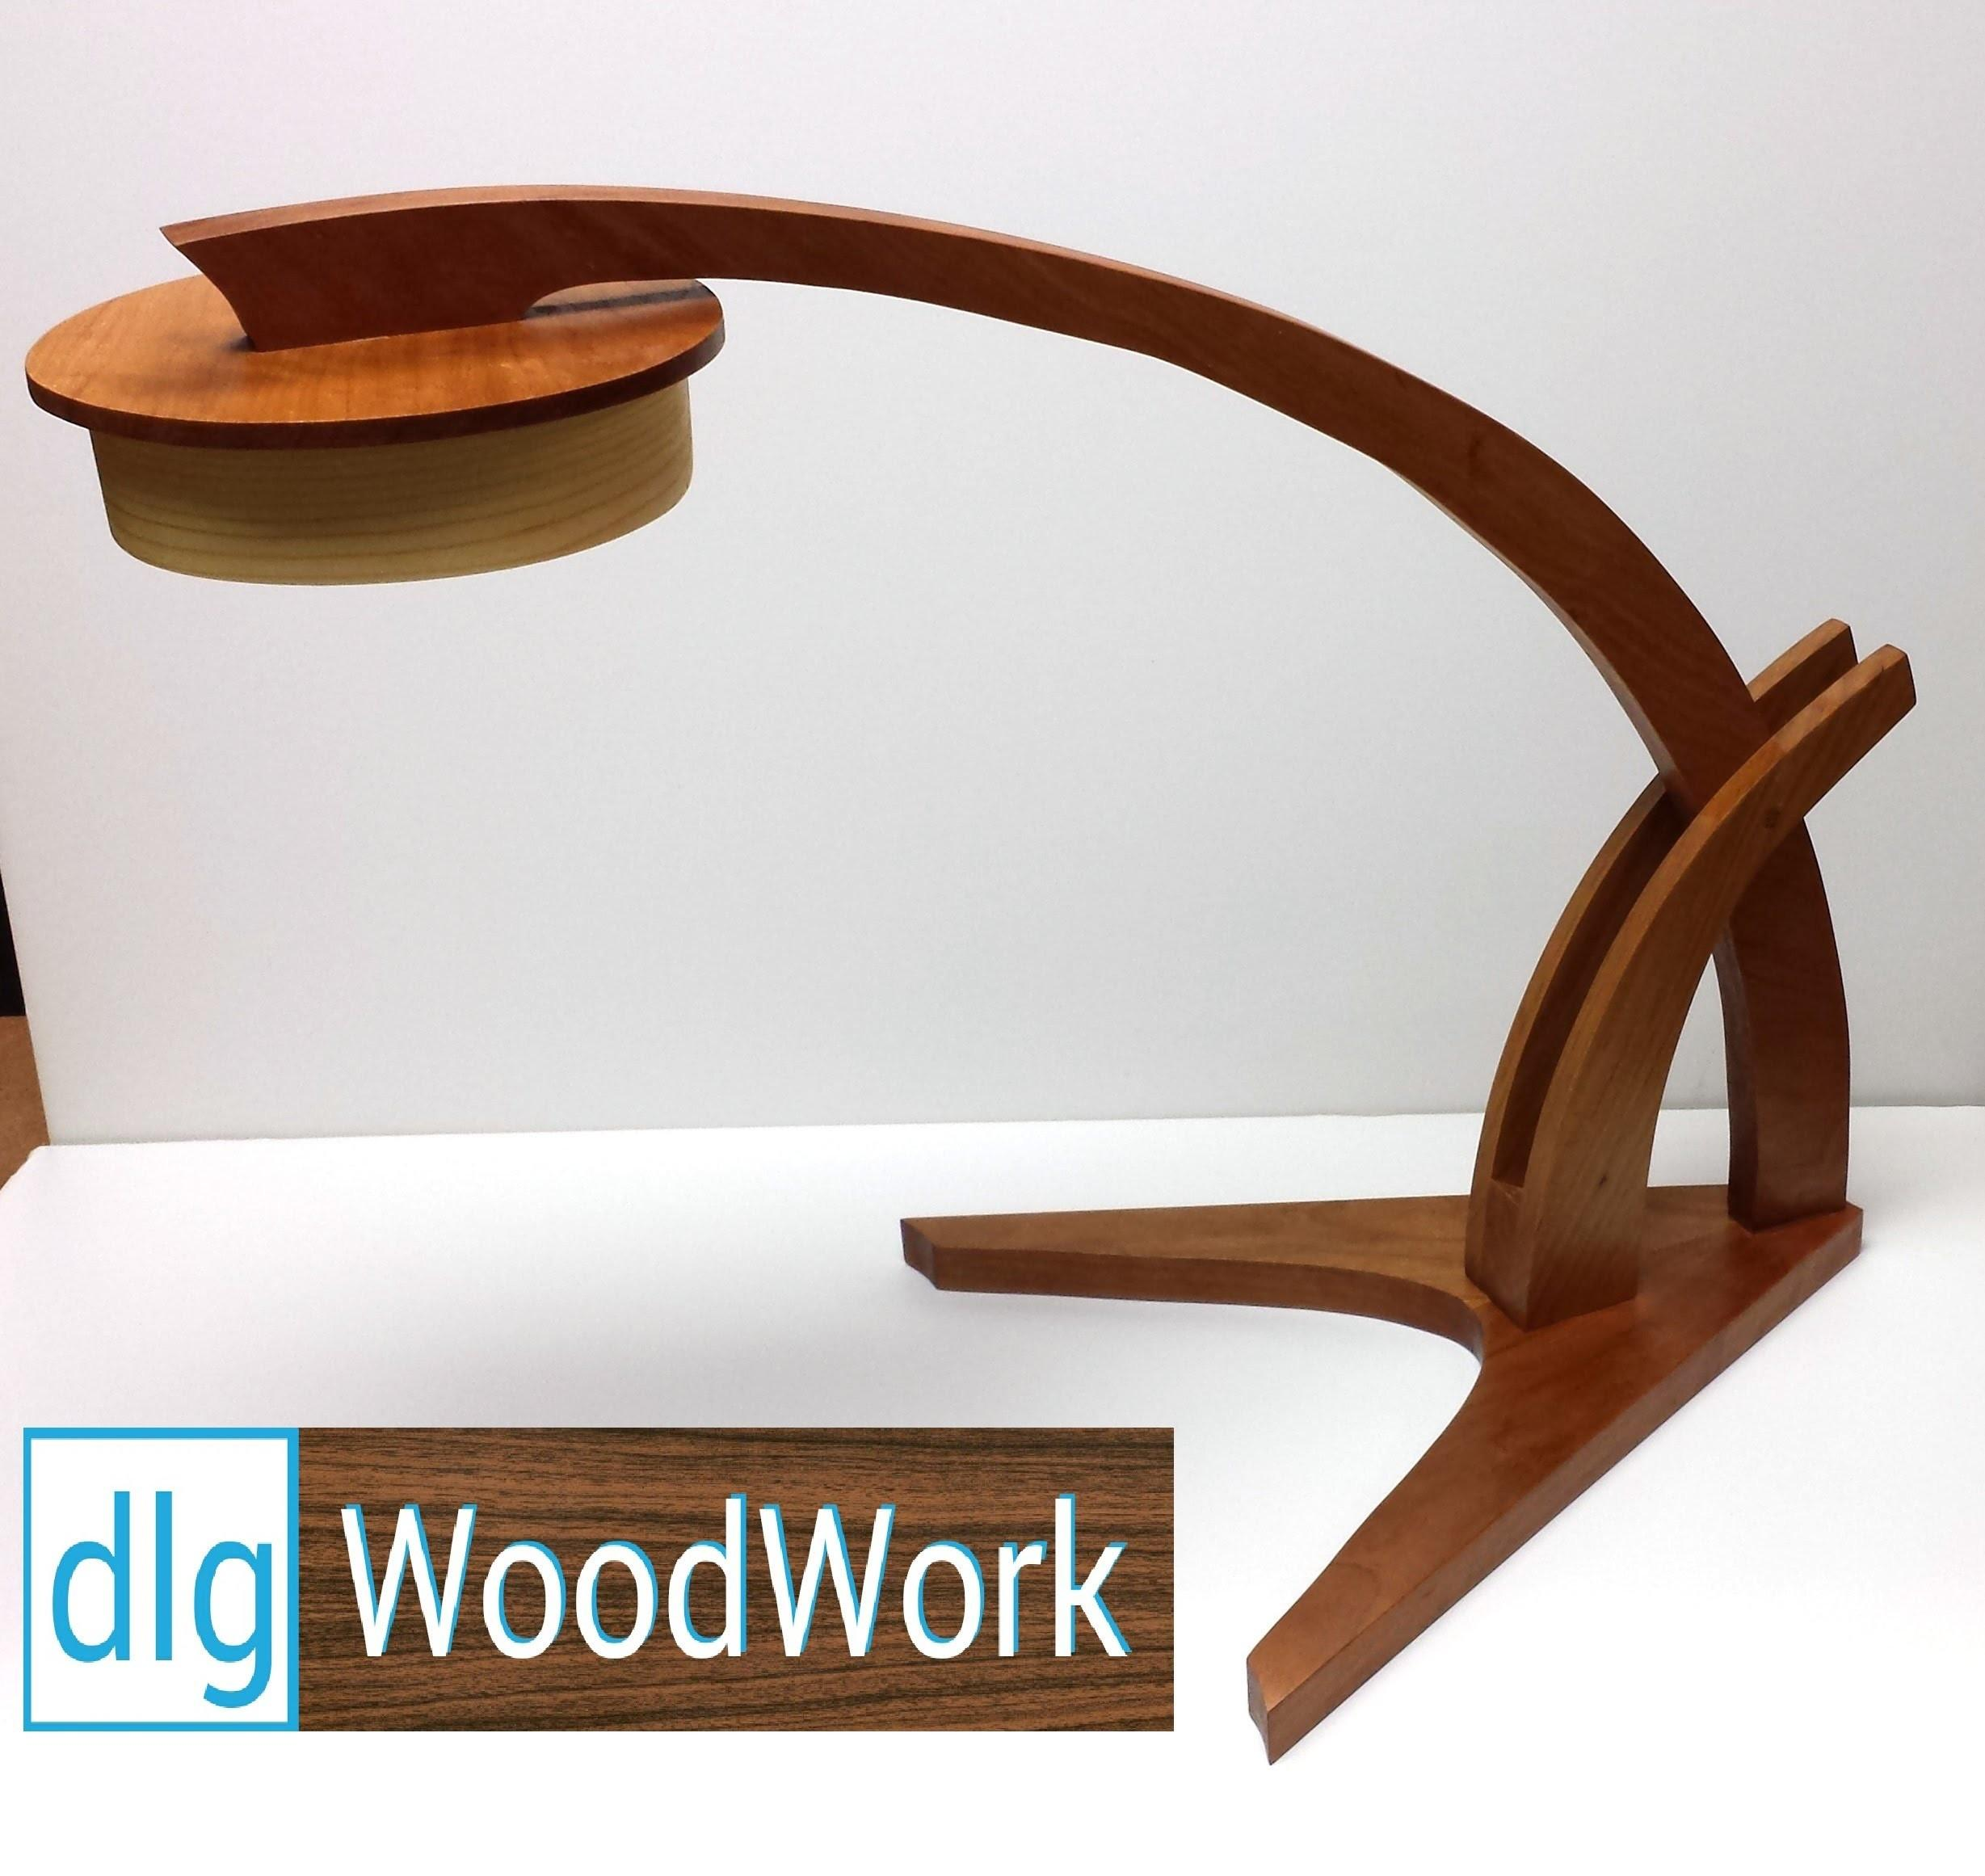 Build Wood Magazine Prairie Grass Desk Lamp